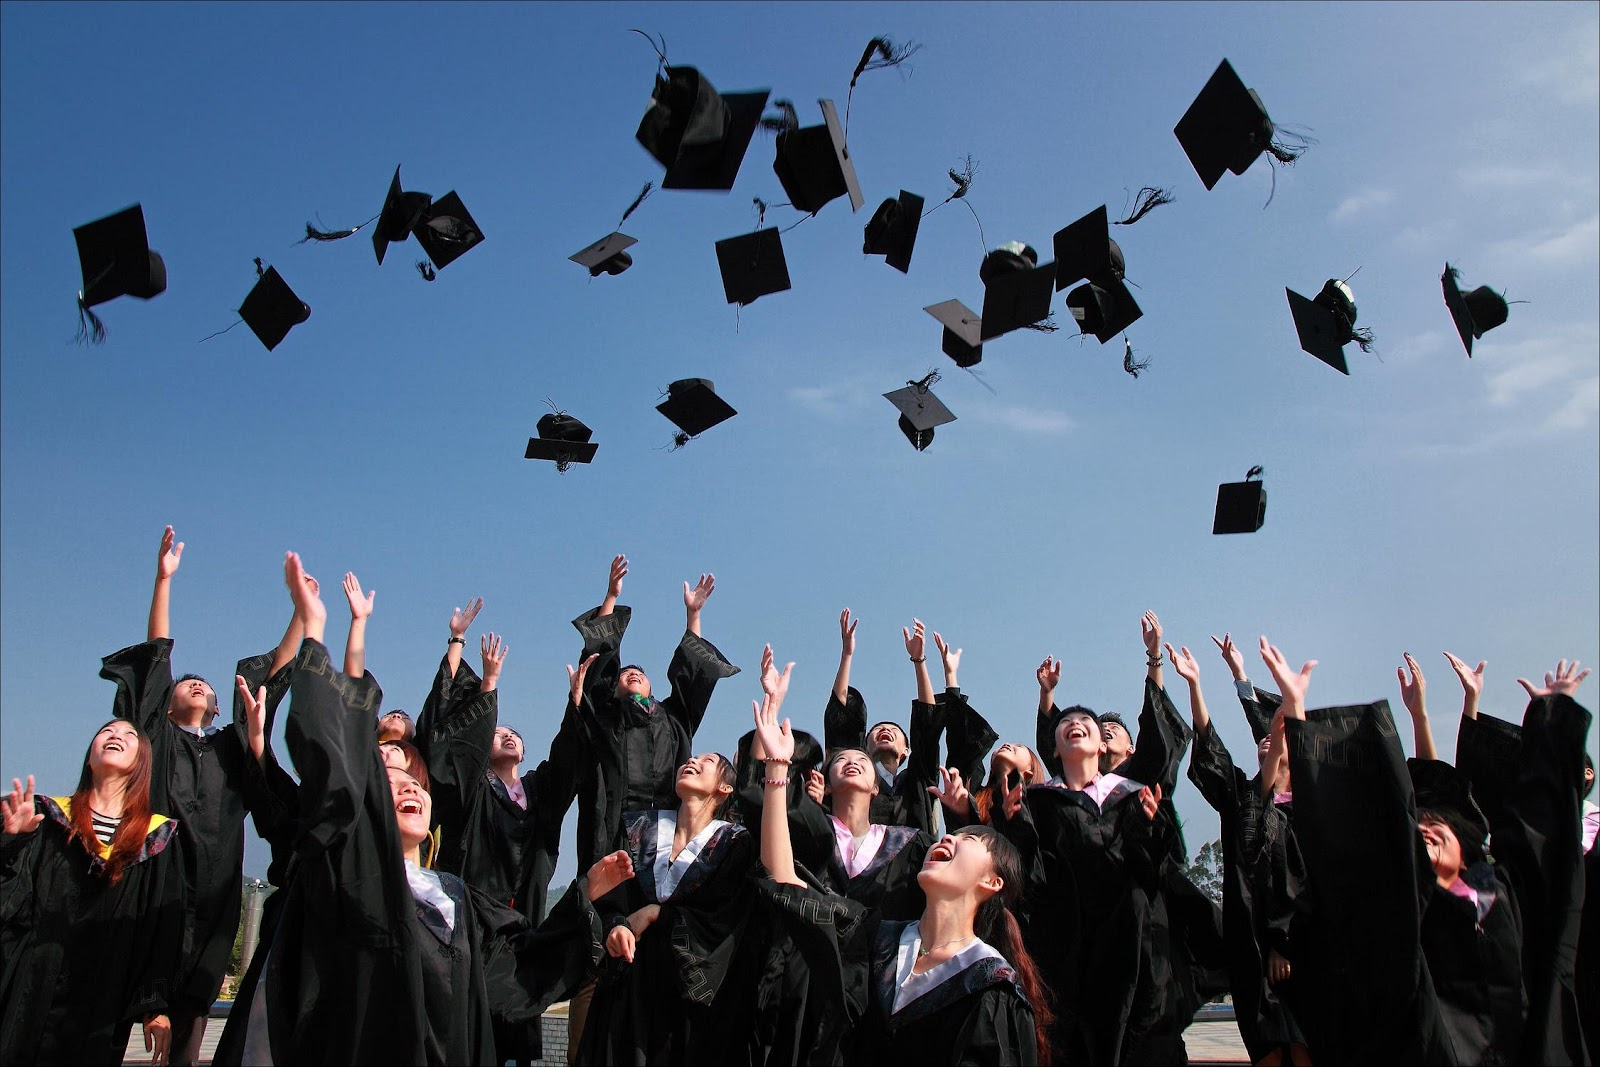 Students wearing graduation gowns throwing their caps in the air